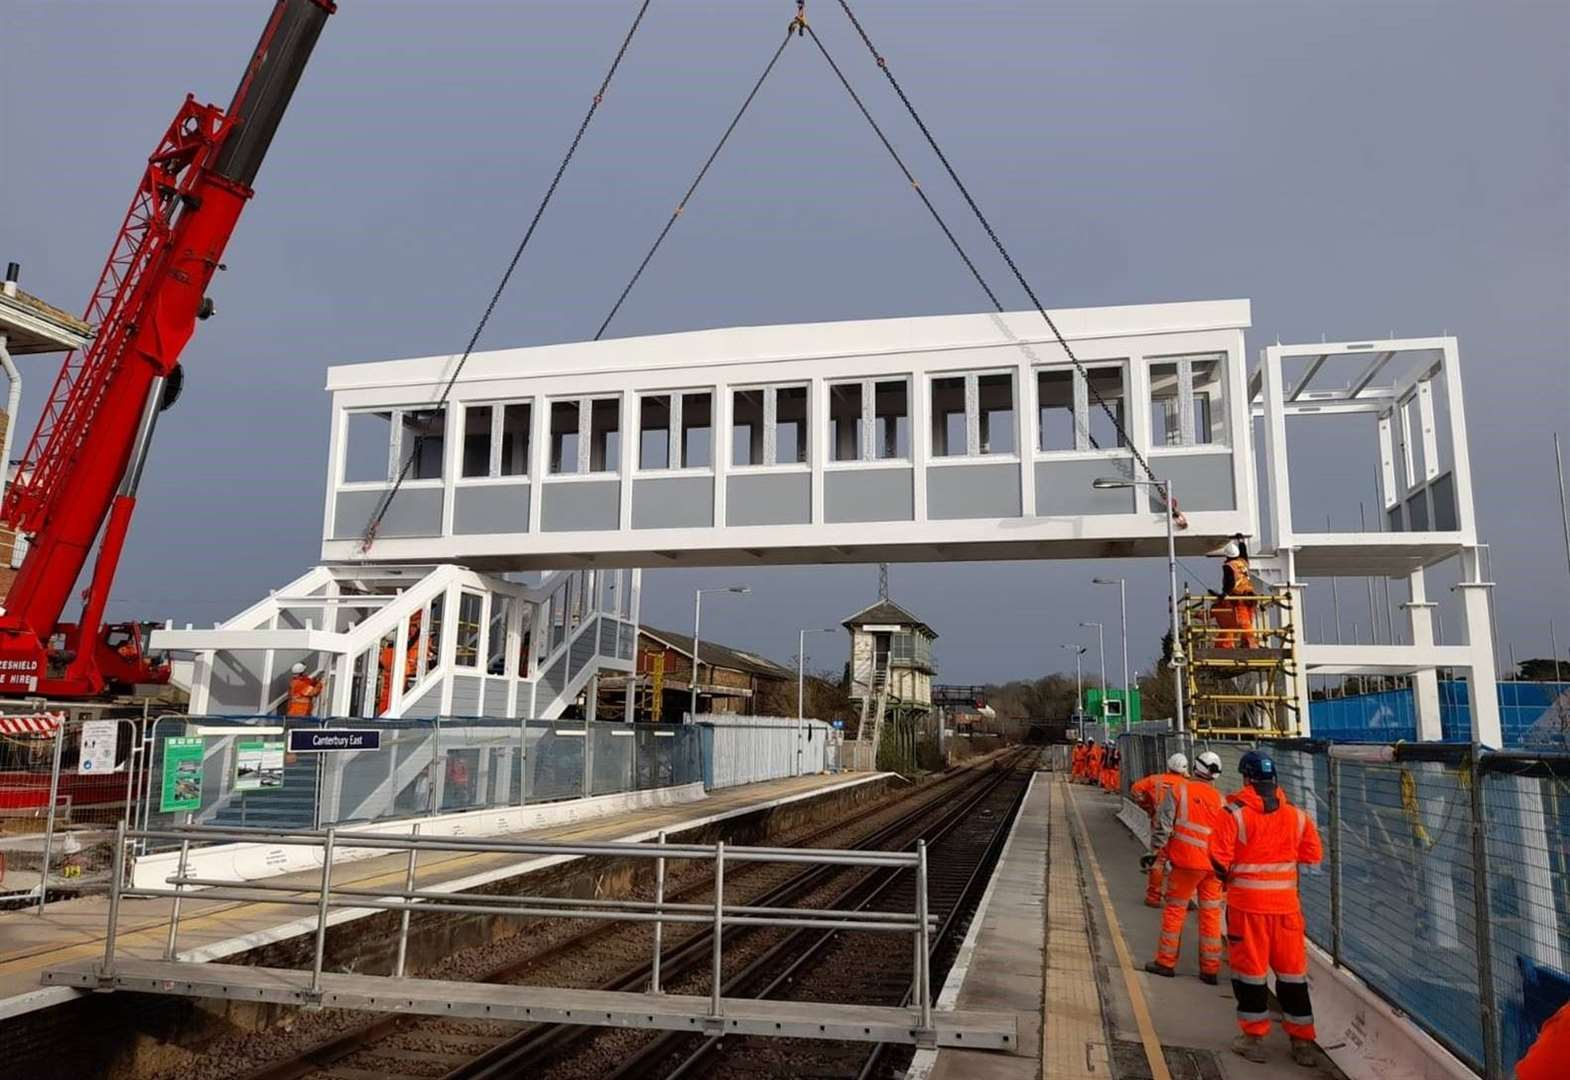 New footbridge installed at train station